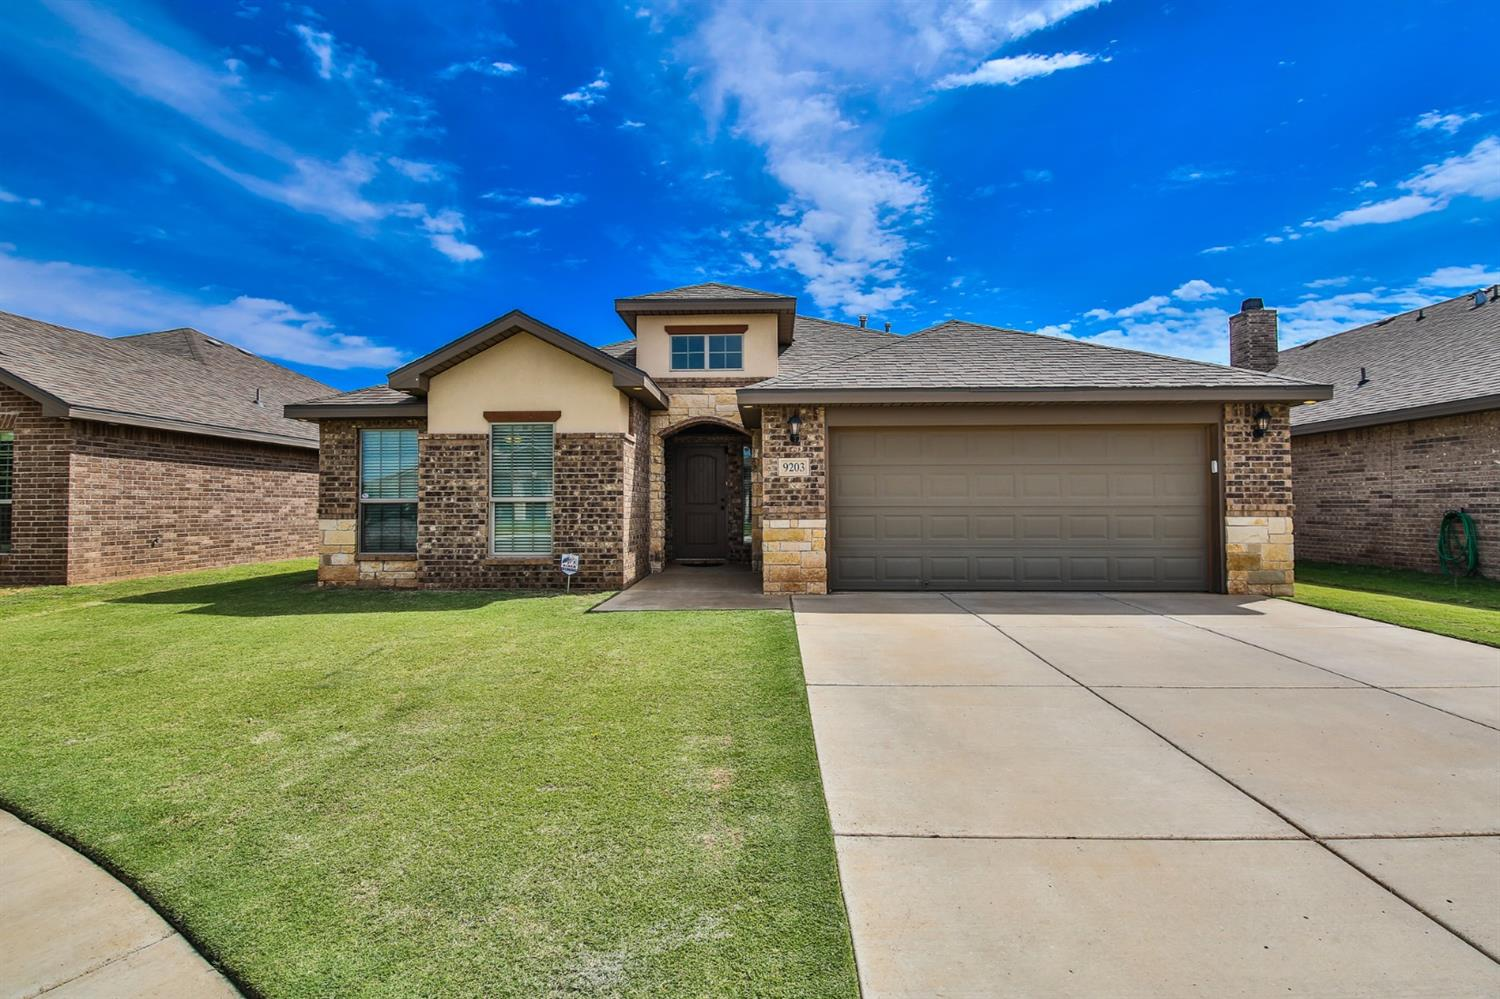 9203 Turner Avenue, Lubbock in Lubbock County, TX 79424 Home for Sale